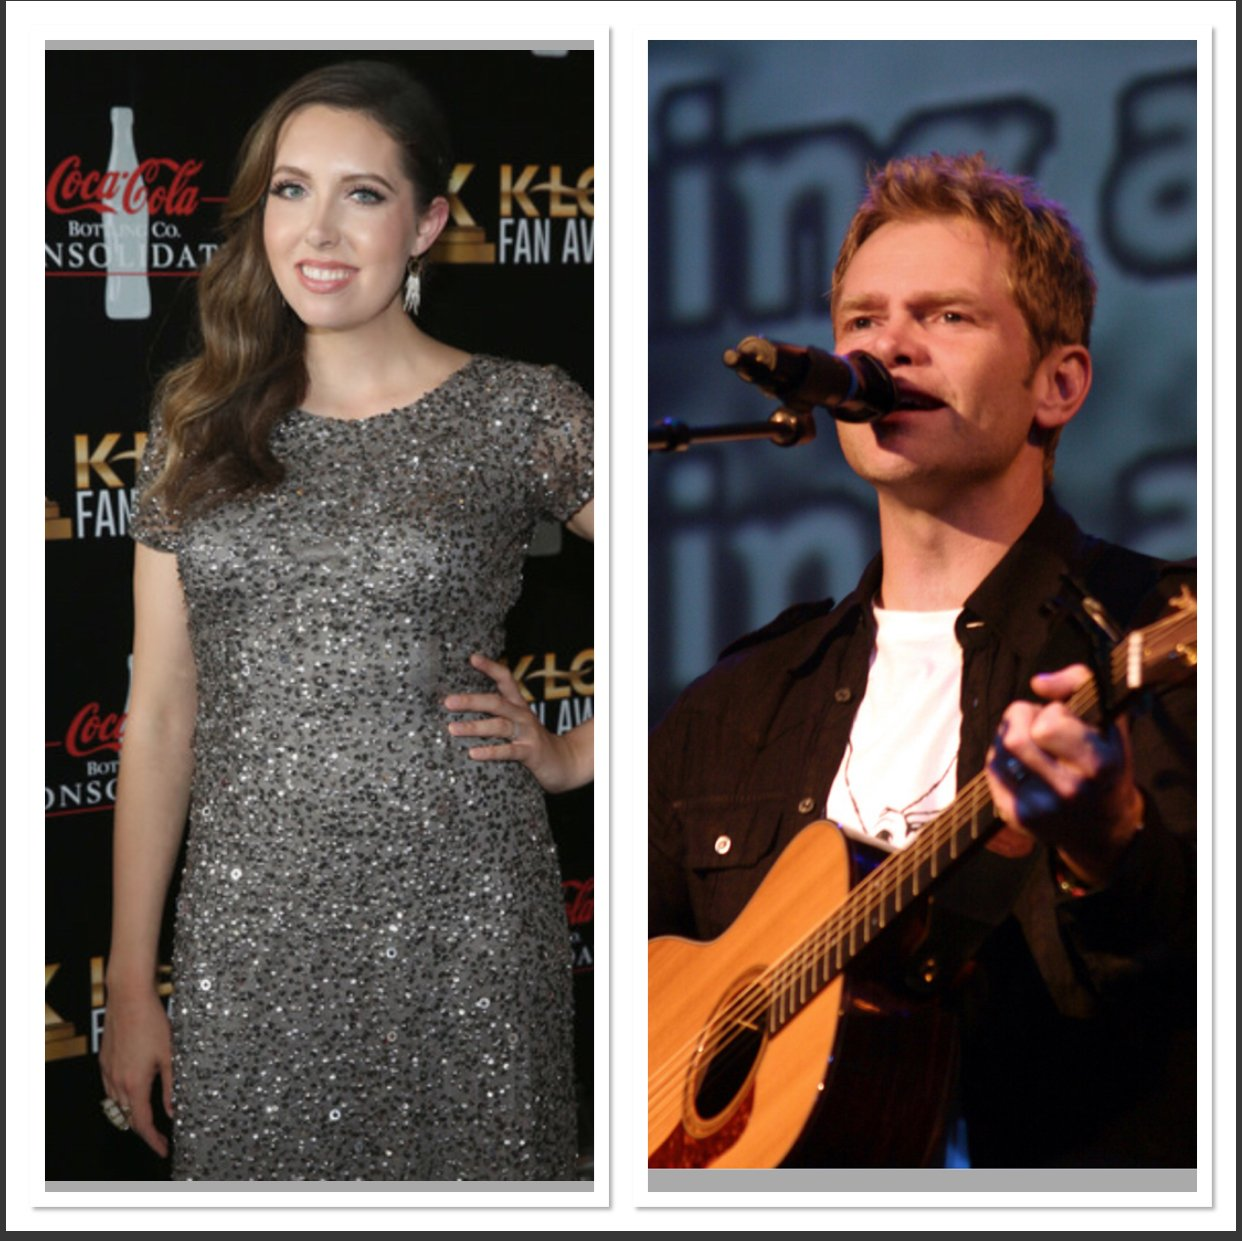 Steven Curtis Chapman & Francesca Battiste photos